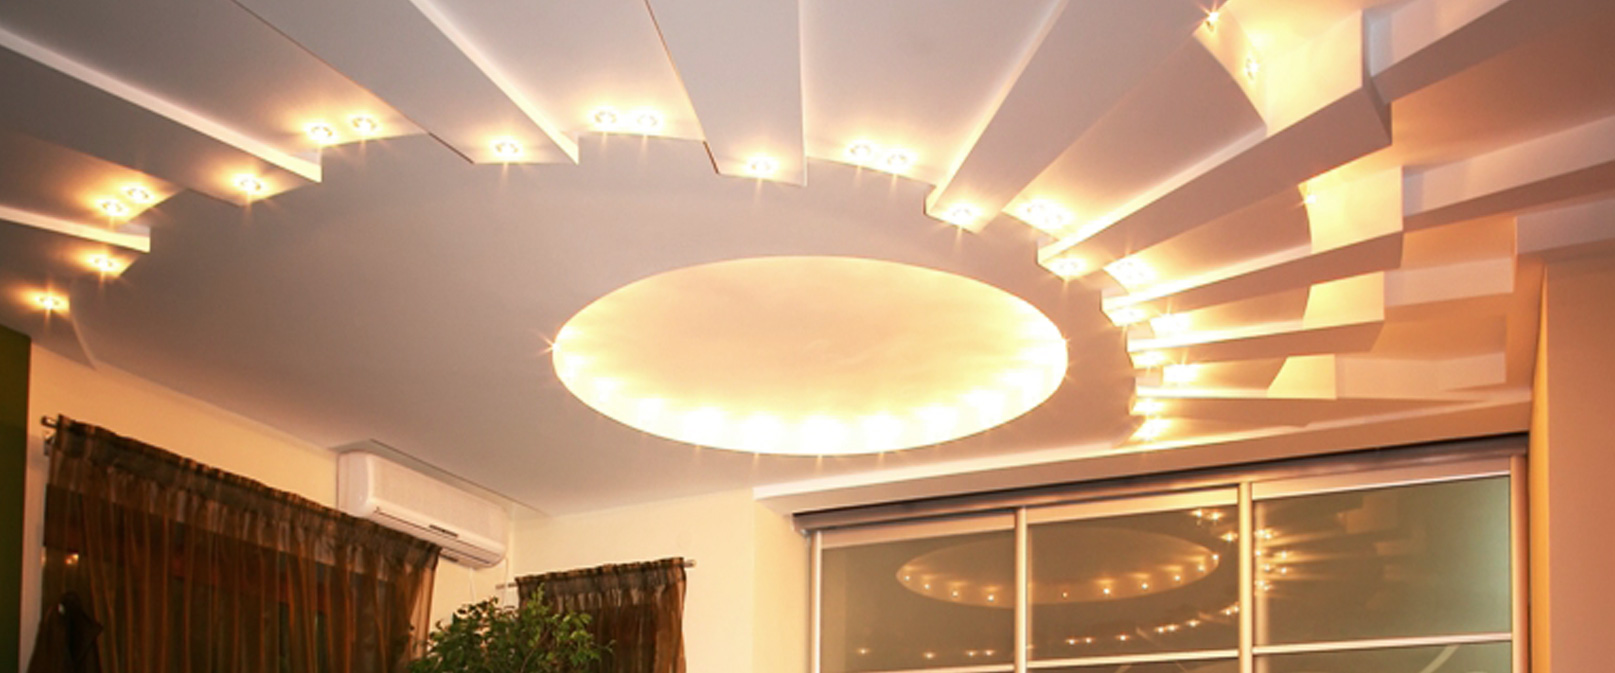 Lighting Up The Ceiling Saint Gobain Gyproc India Diy Home Improvement Pinterest Electrical Wiring